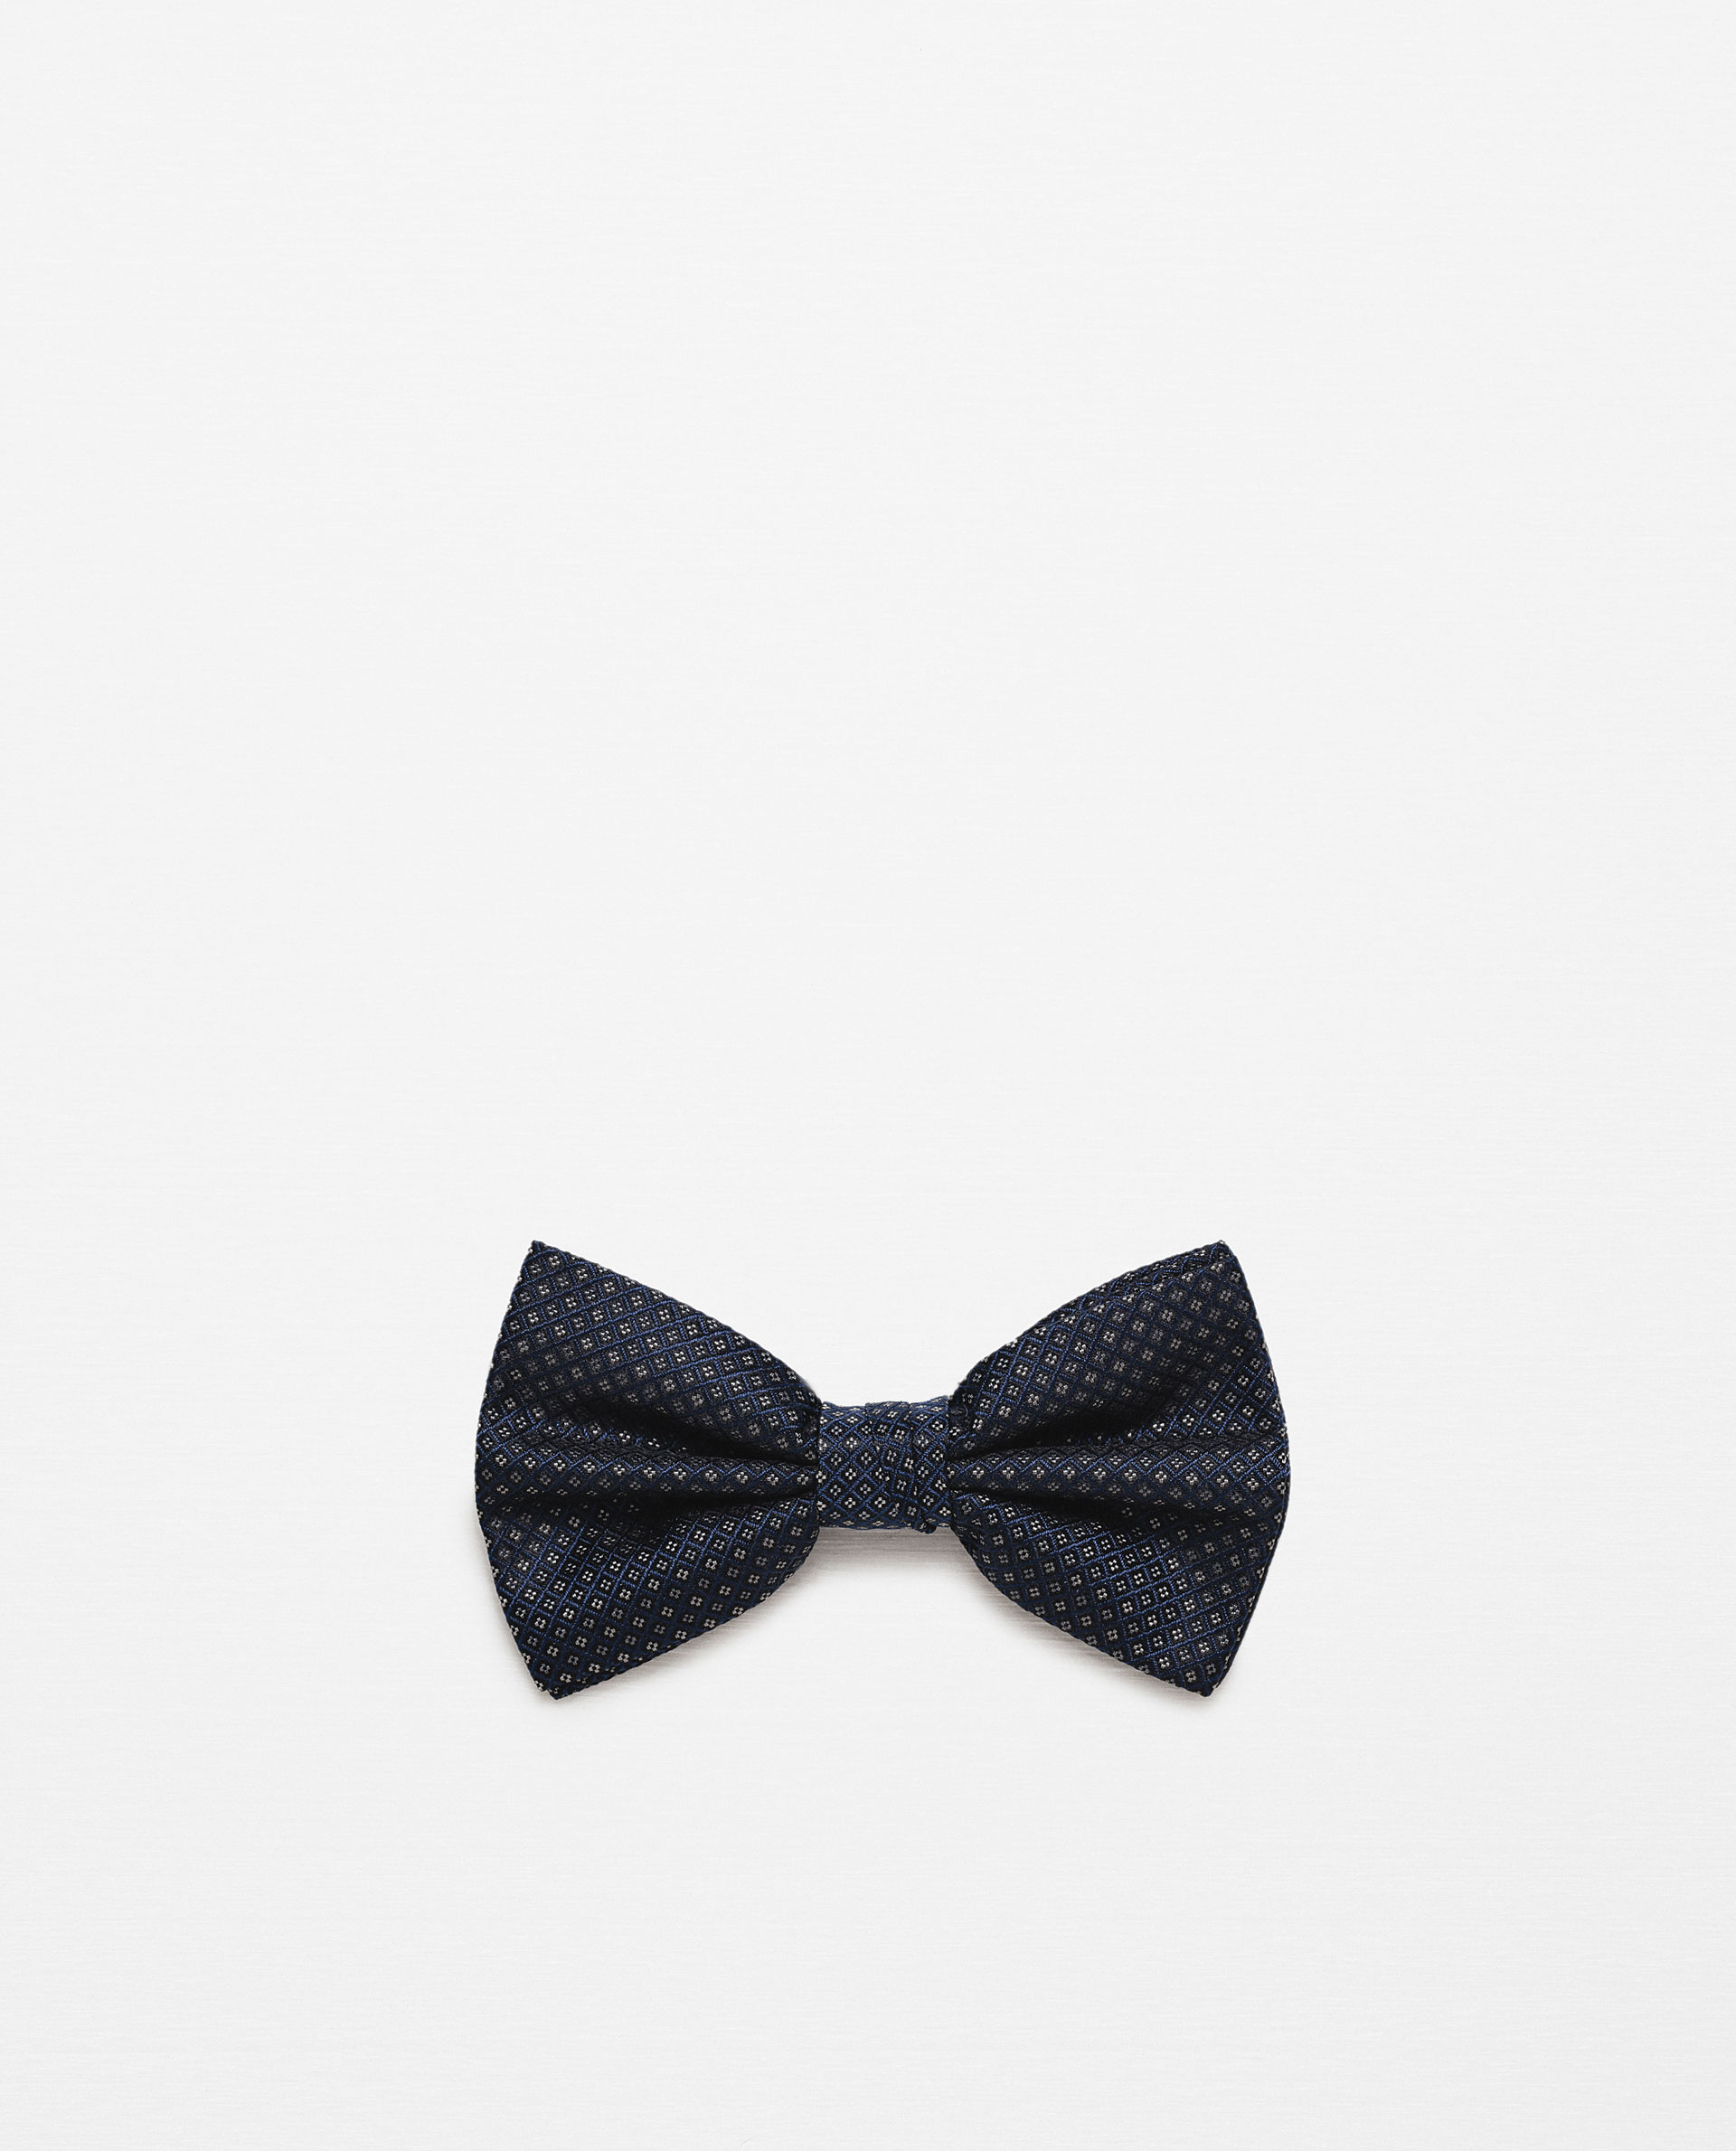 how to draw a bow tie pattern